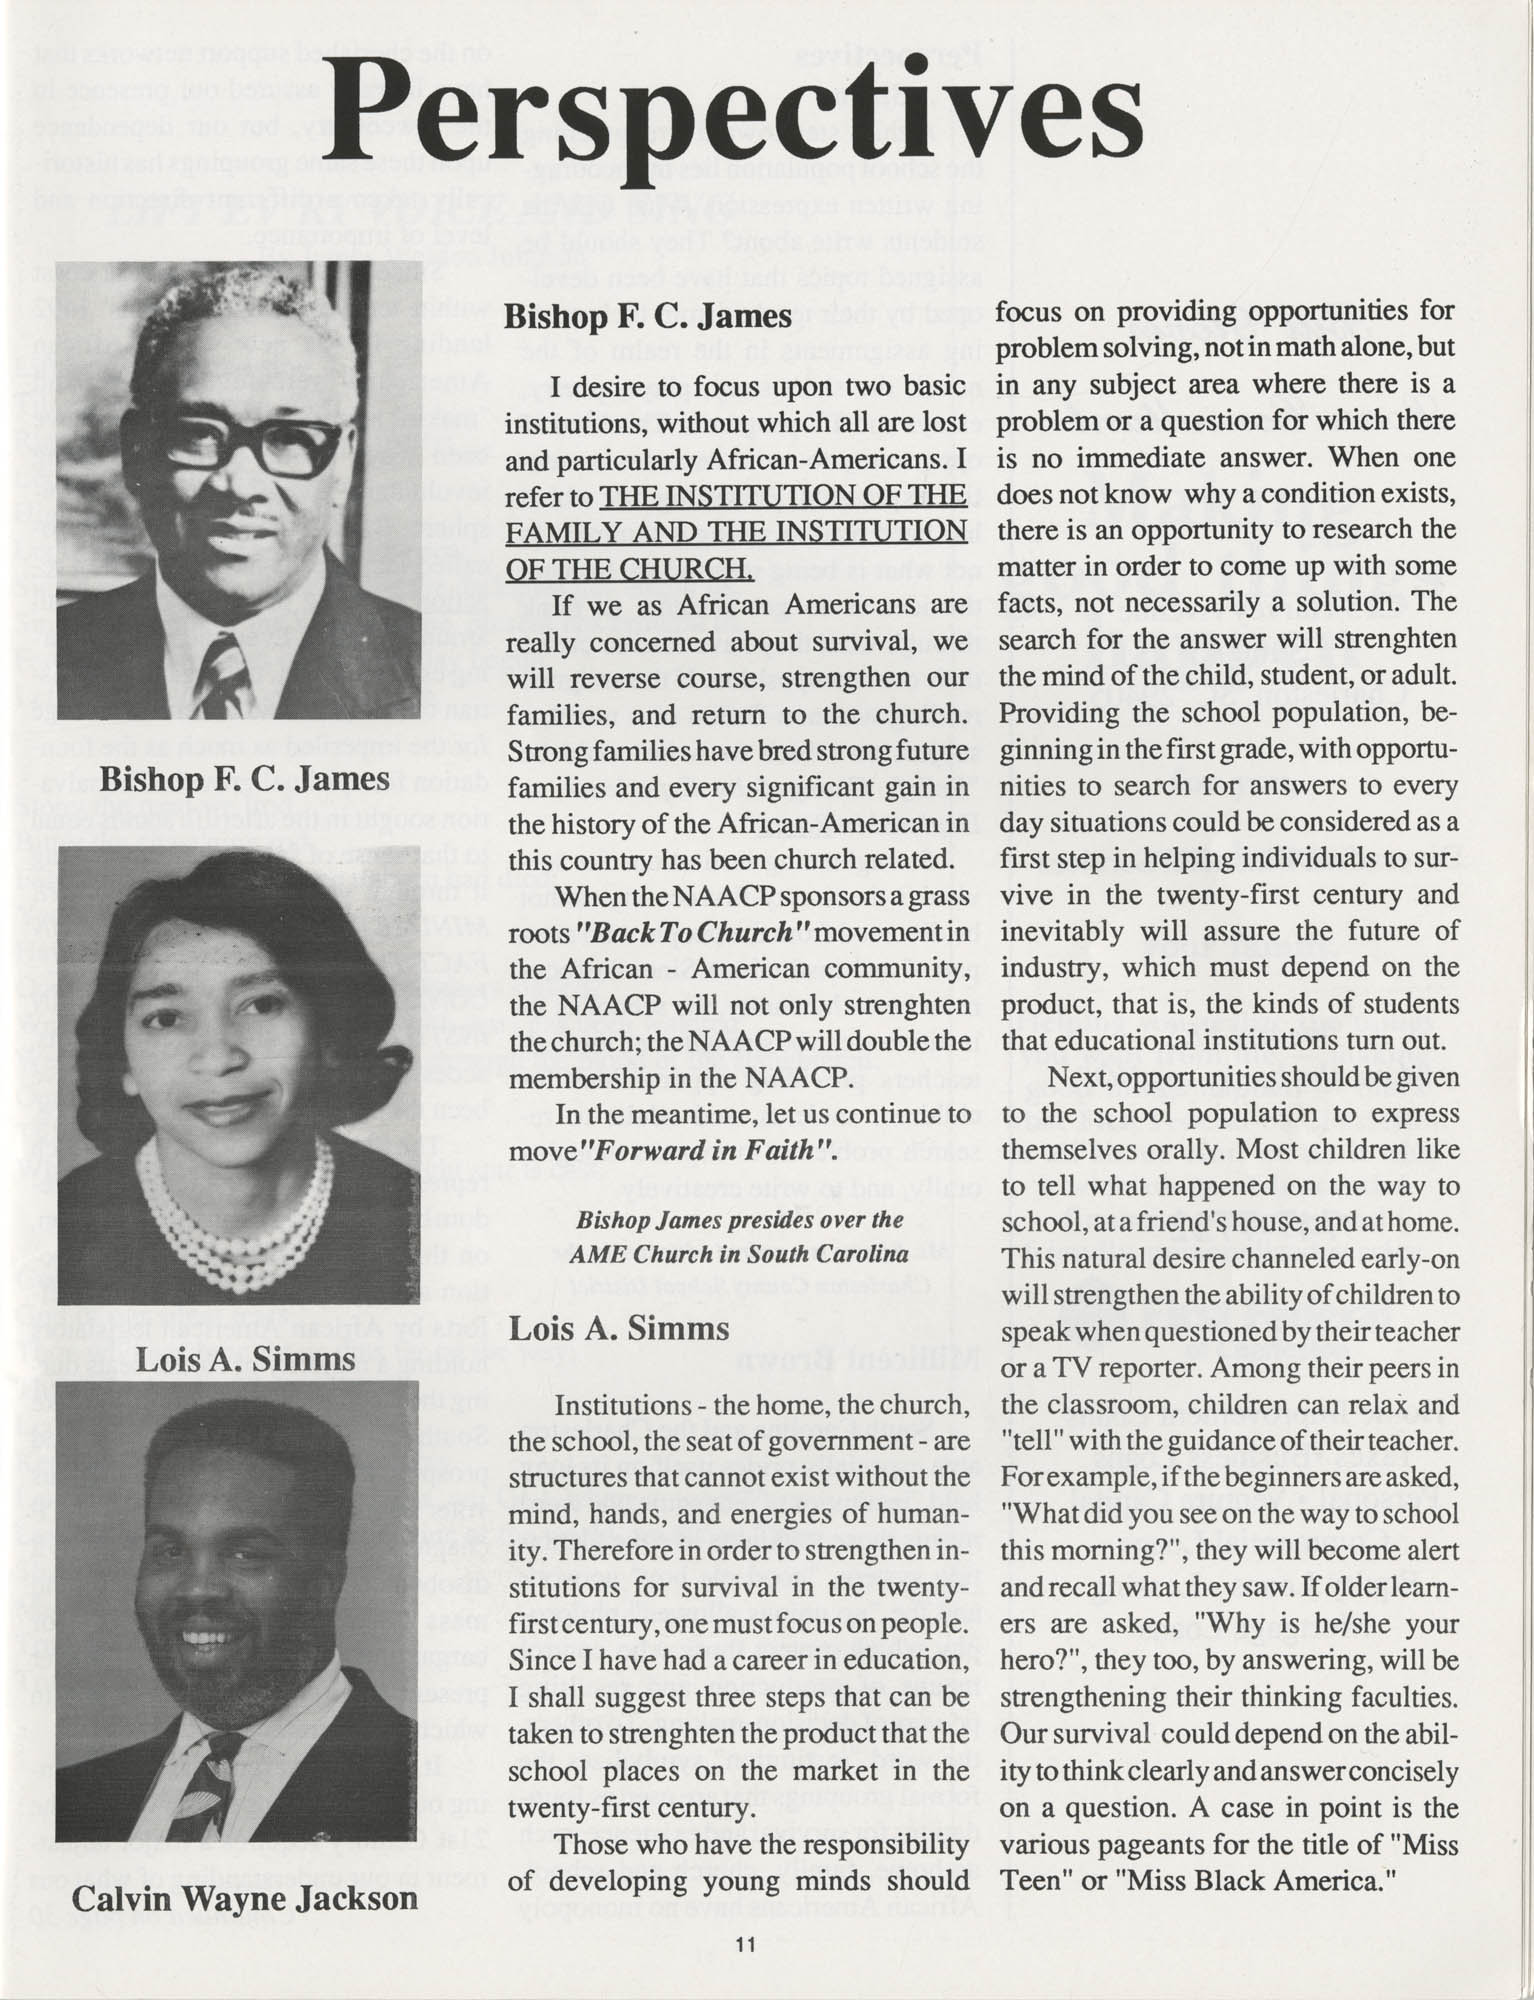 1990 NAACP Freedom Fund Magazine, Charleston Branch of the NAACP, 74th Anniversary, Page 11